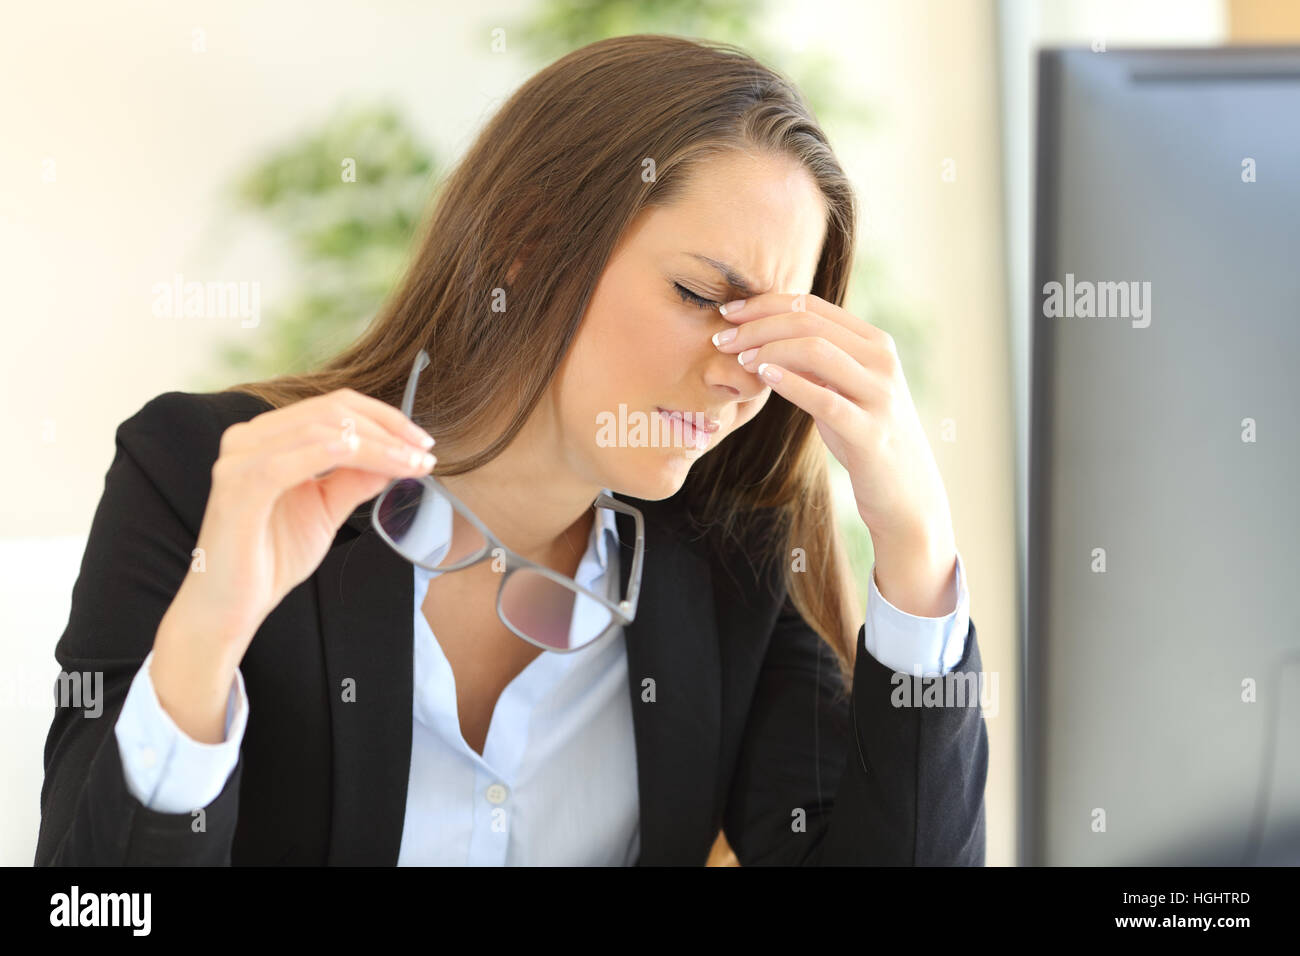 Fatigued businesswoman holding glasses suffering eyestrain in front of a pc screen at office - Stock Image